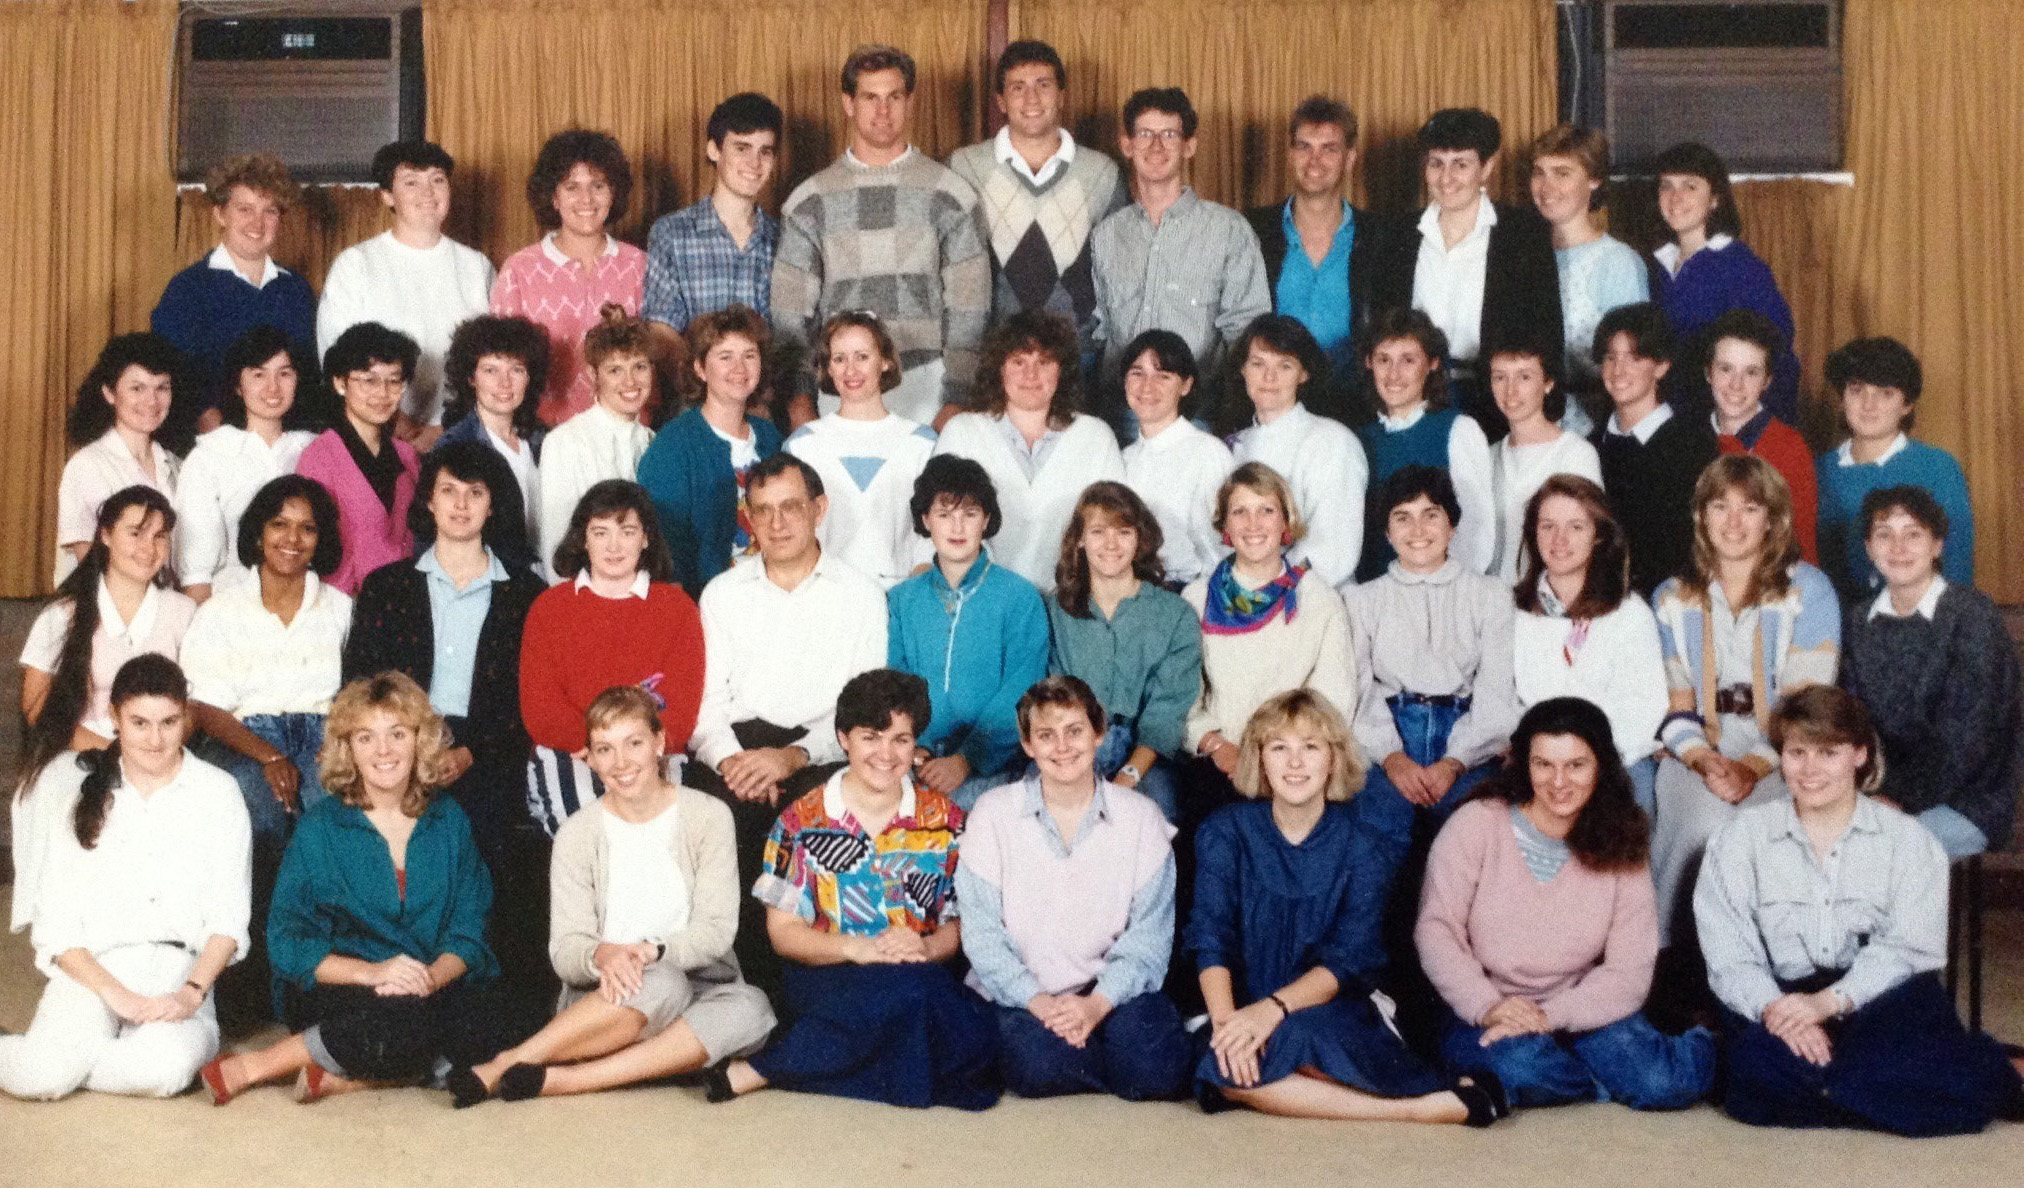 1987 Occupational Therapy Reunion